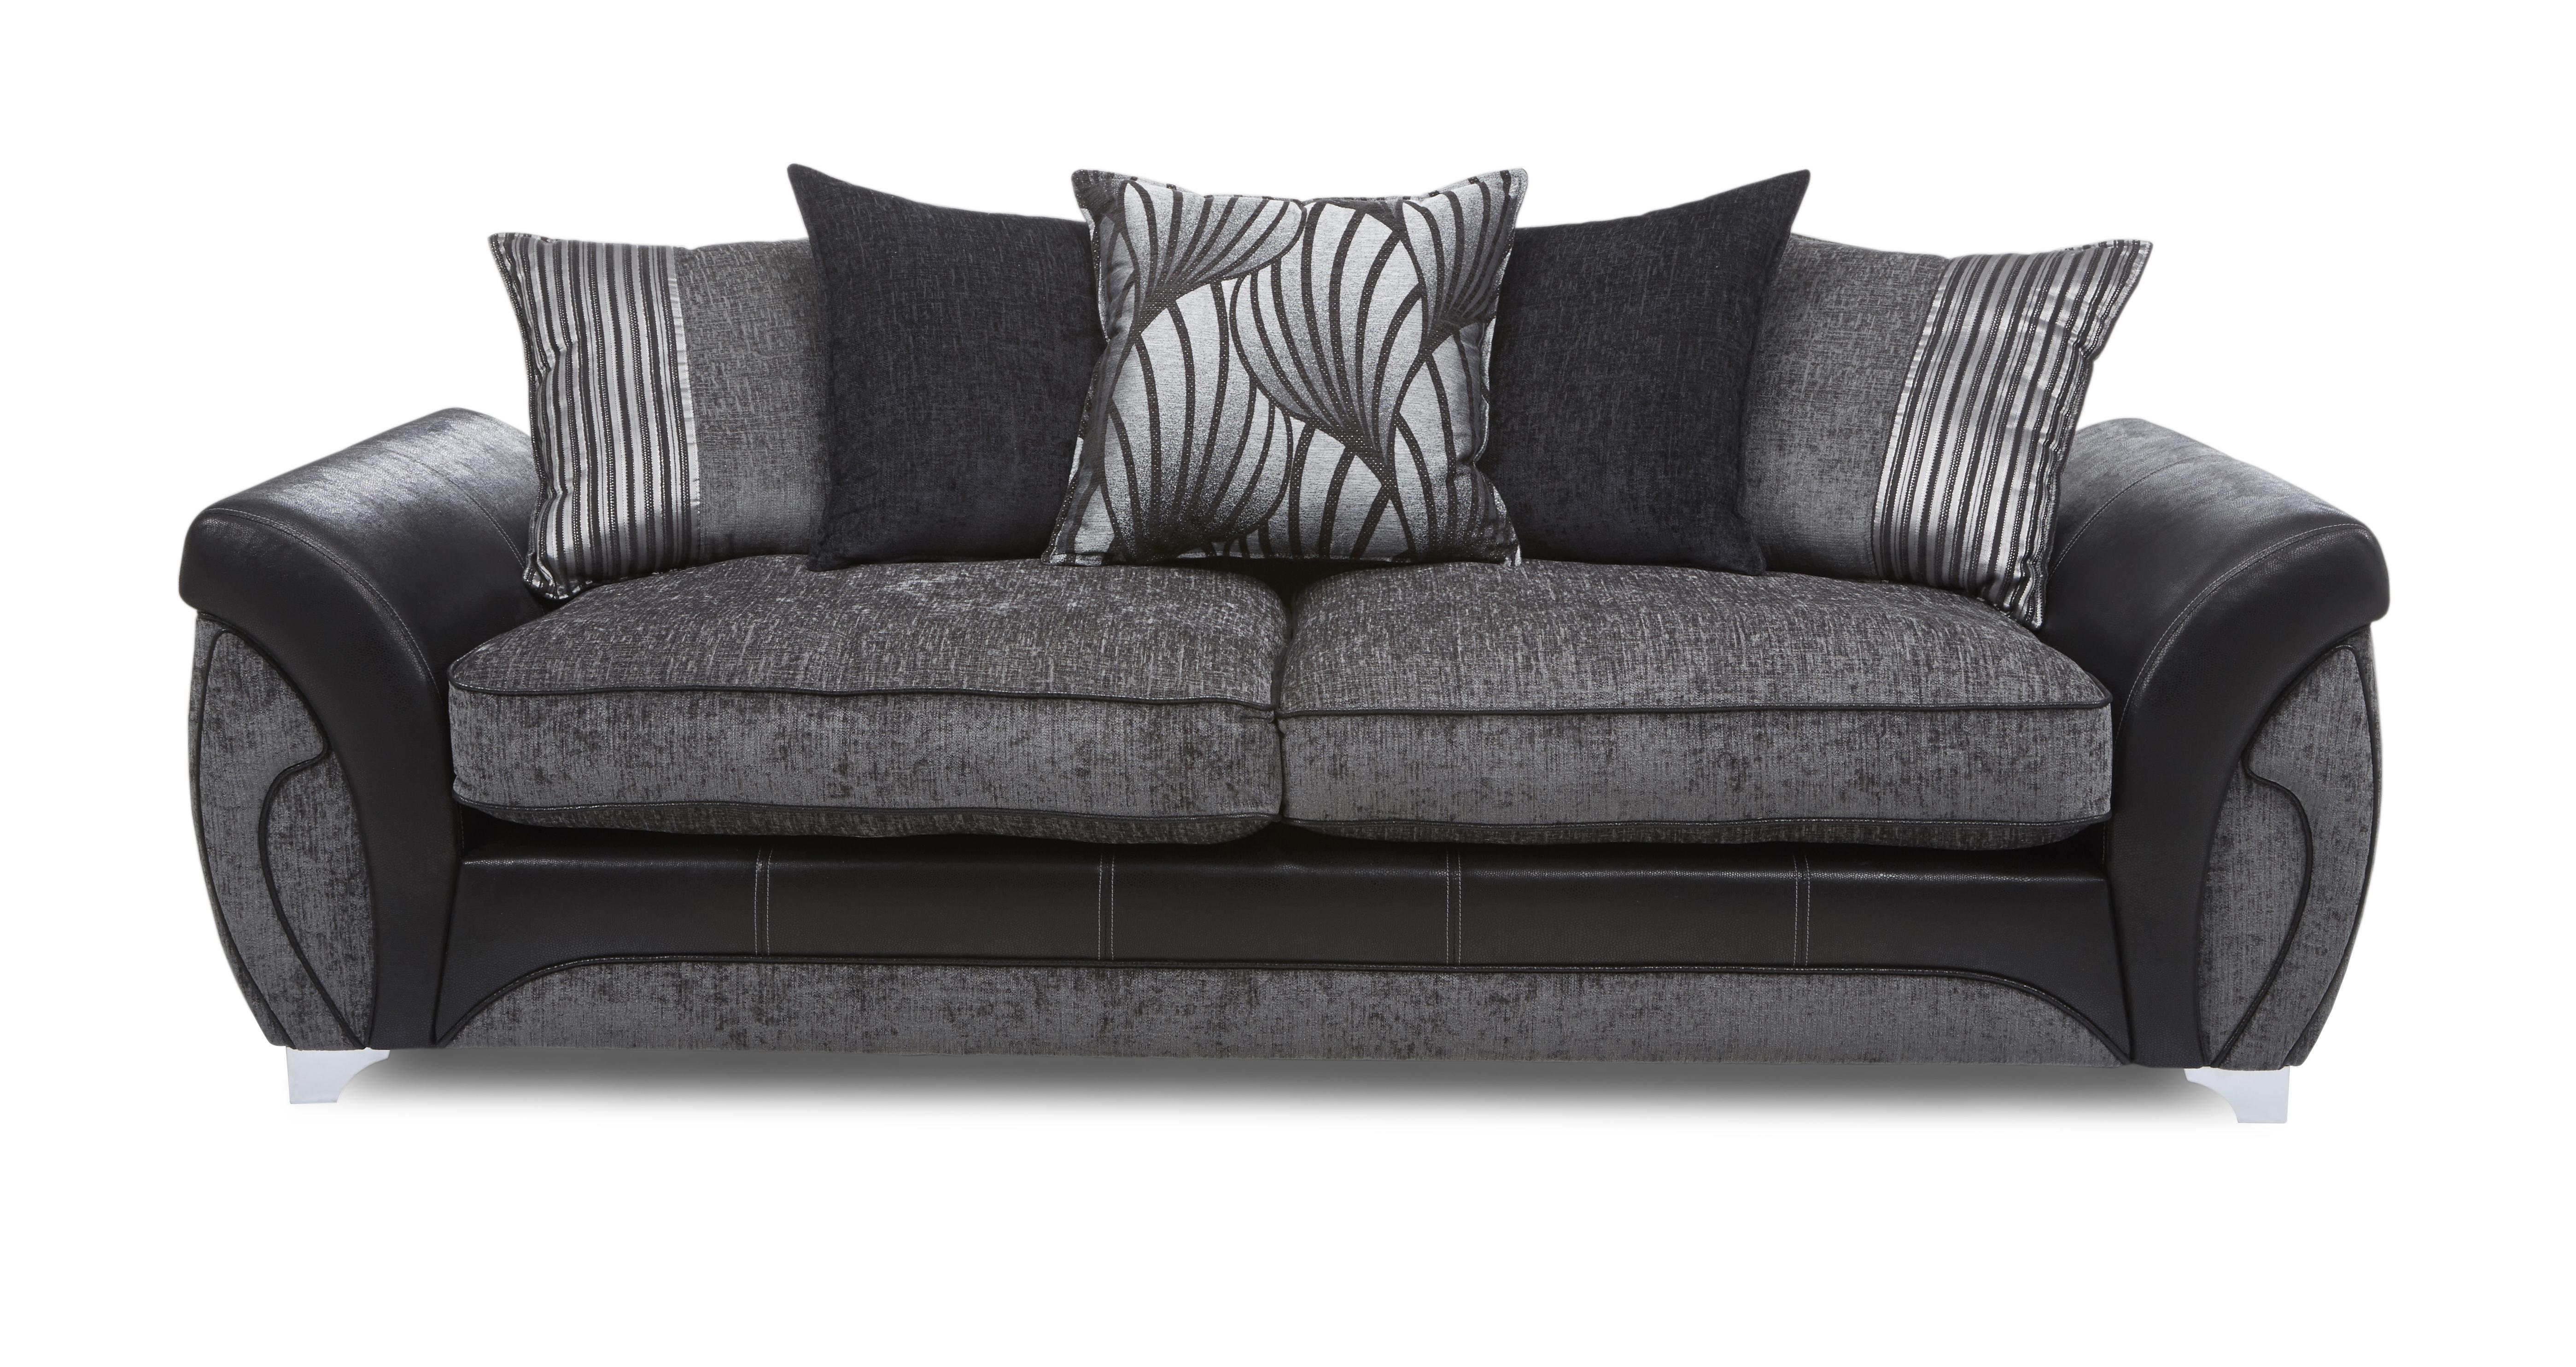 Dfs black and grey sofa for Black and grey sofa